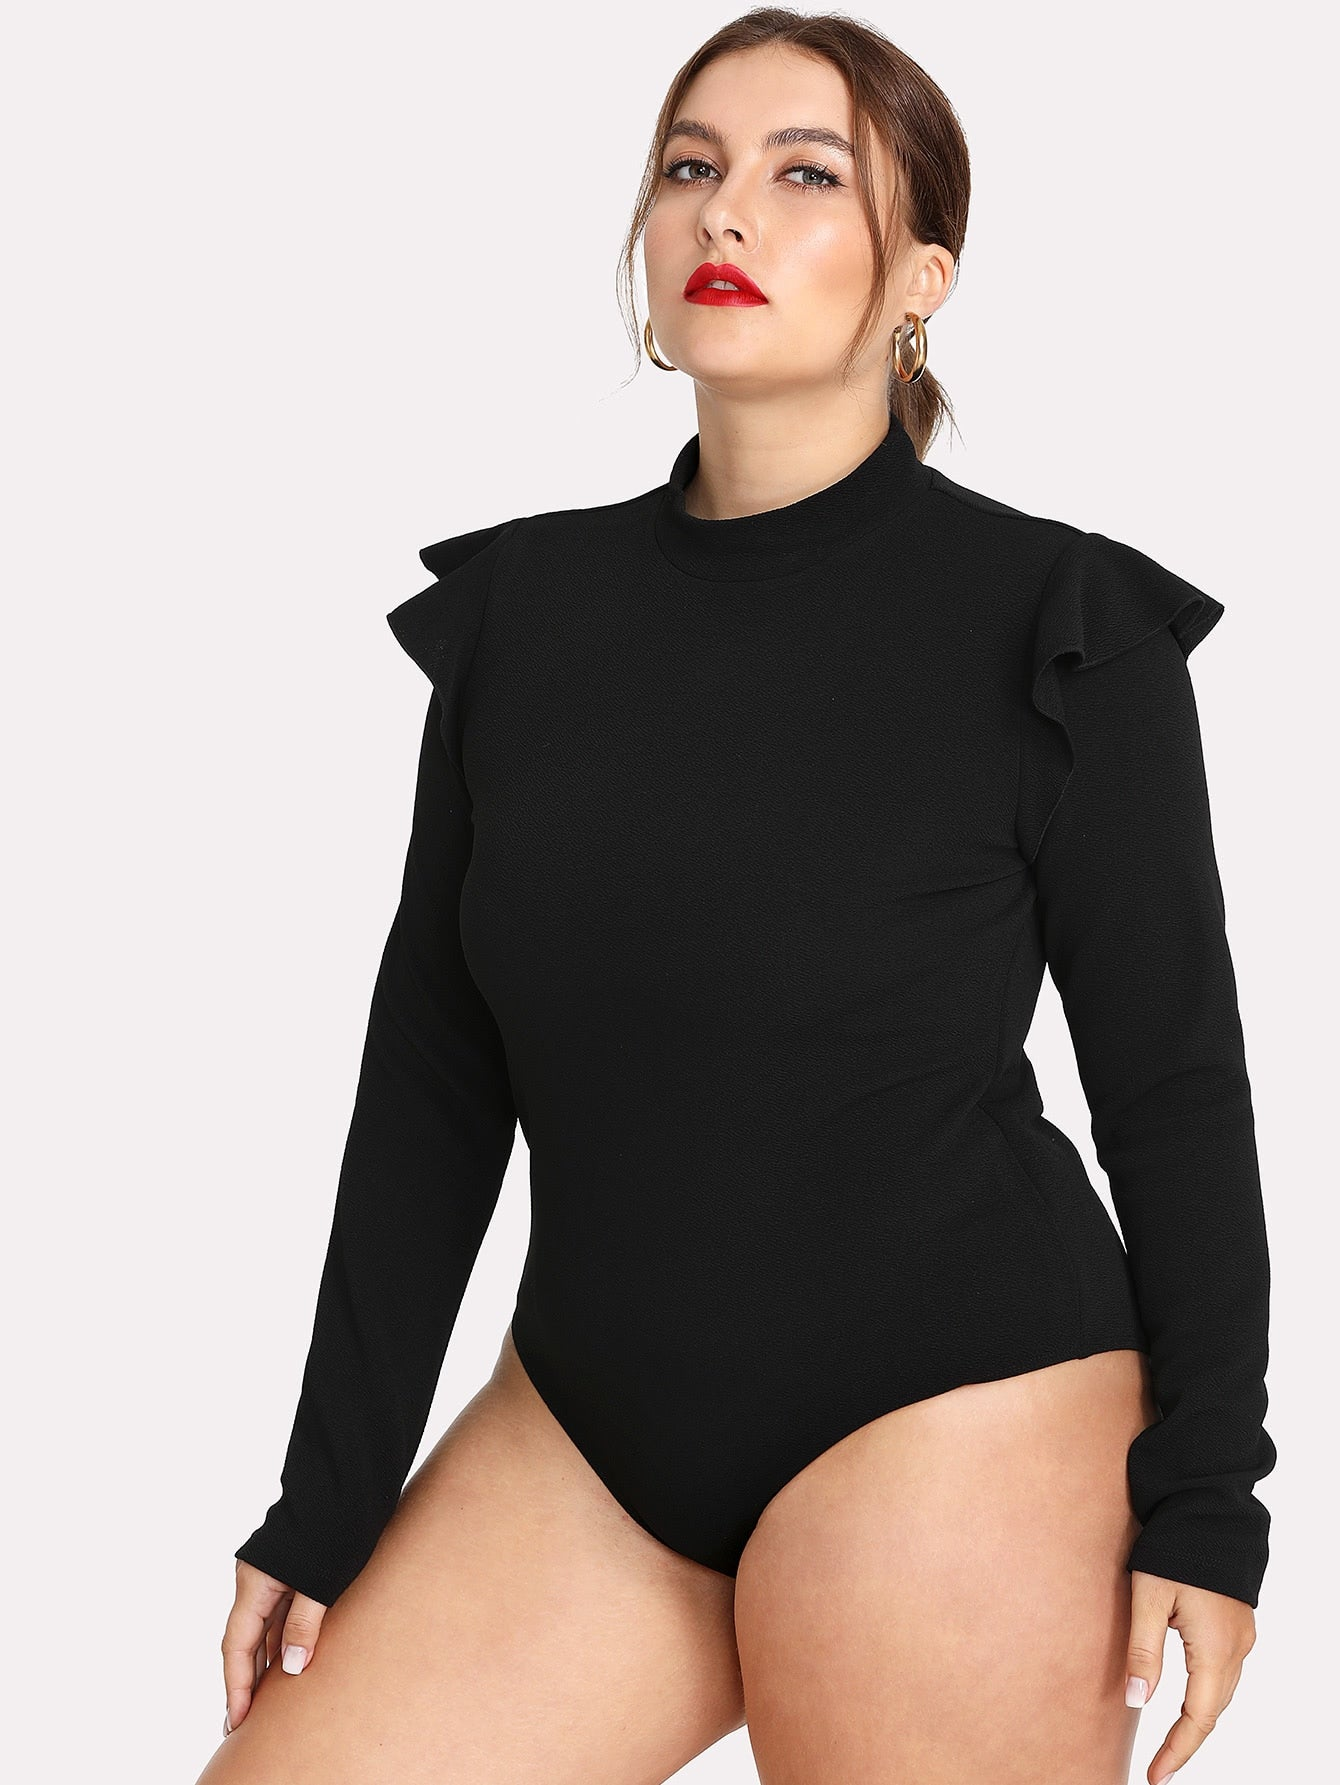 Plus Size Black Long Sleeve Stand Collar Bodysuit | Plus Size Bodysuit | SHEIN | Joan & Vern's Apparel